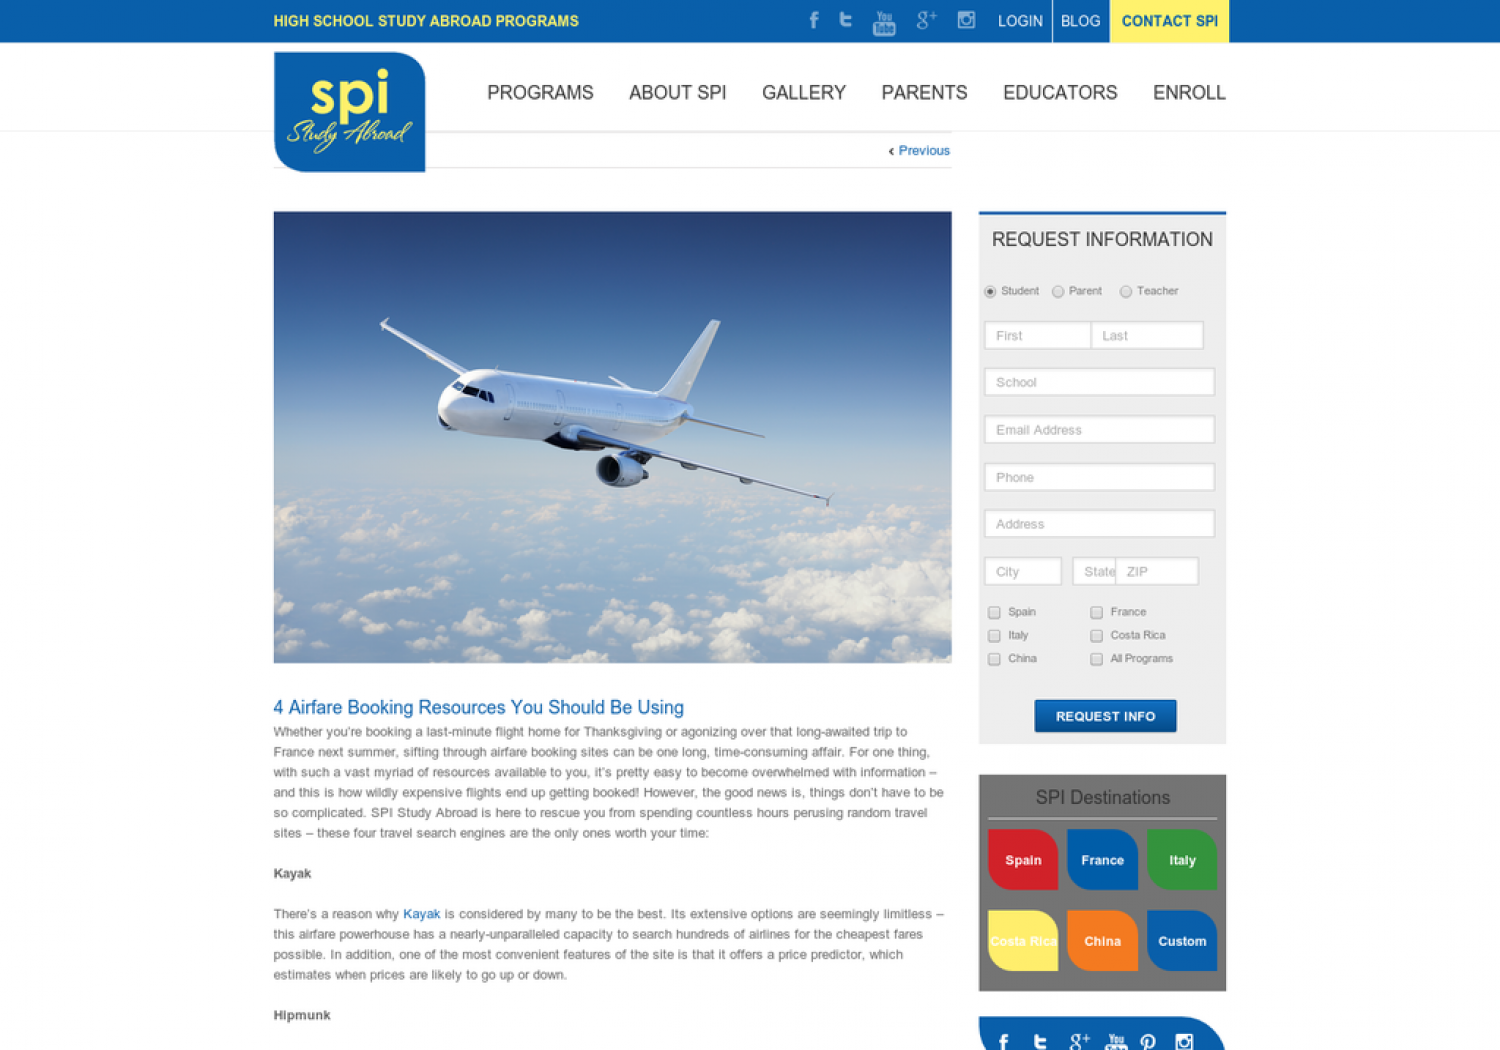 4 Airfare Booking Resources You Should Be Using Infographic